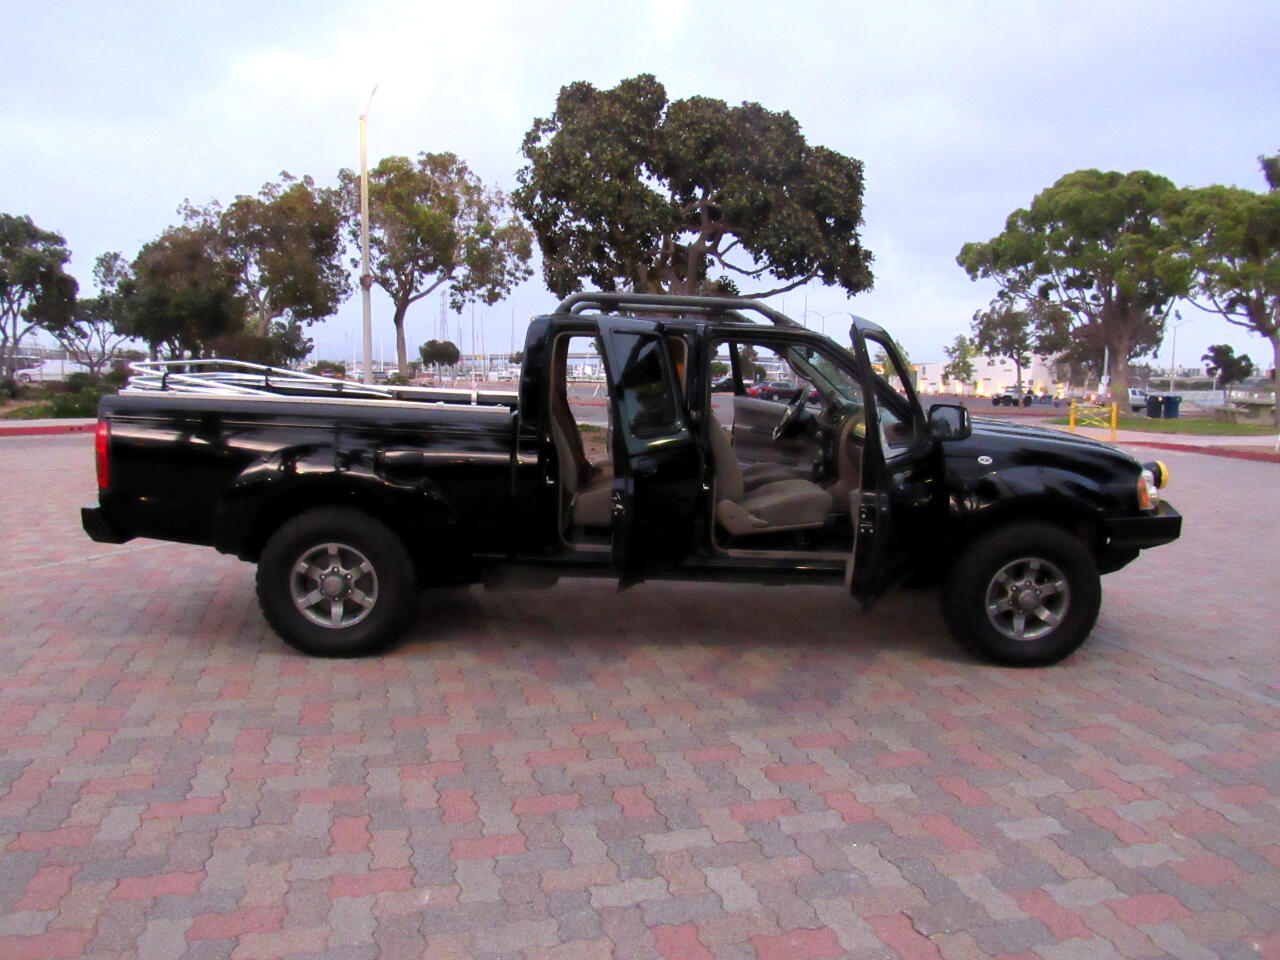 Nissan Frontier XE-V6 Crew Cab Long Bed 2WD 2003